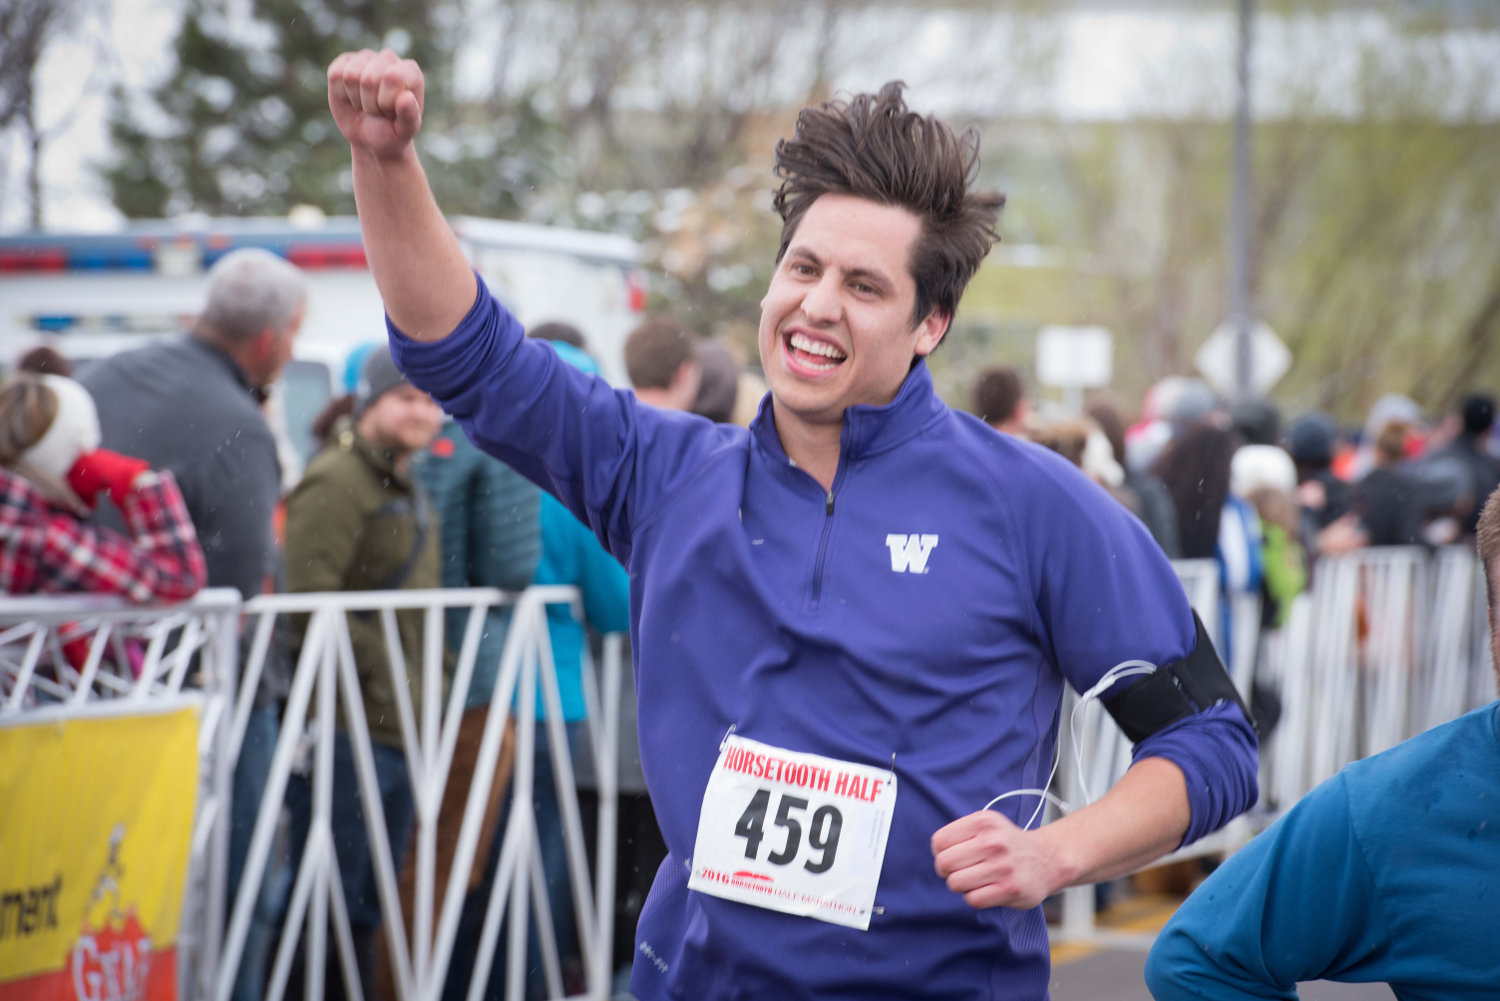 2016 Horsetooth Half Finisher 459